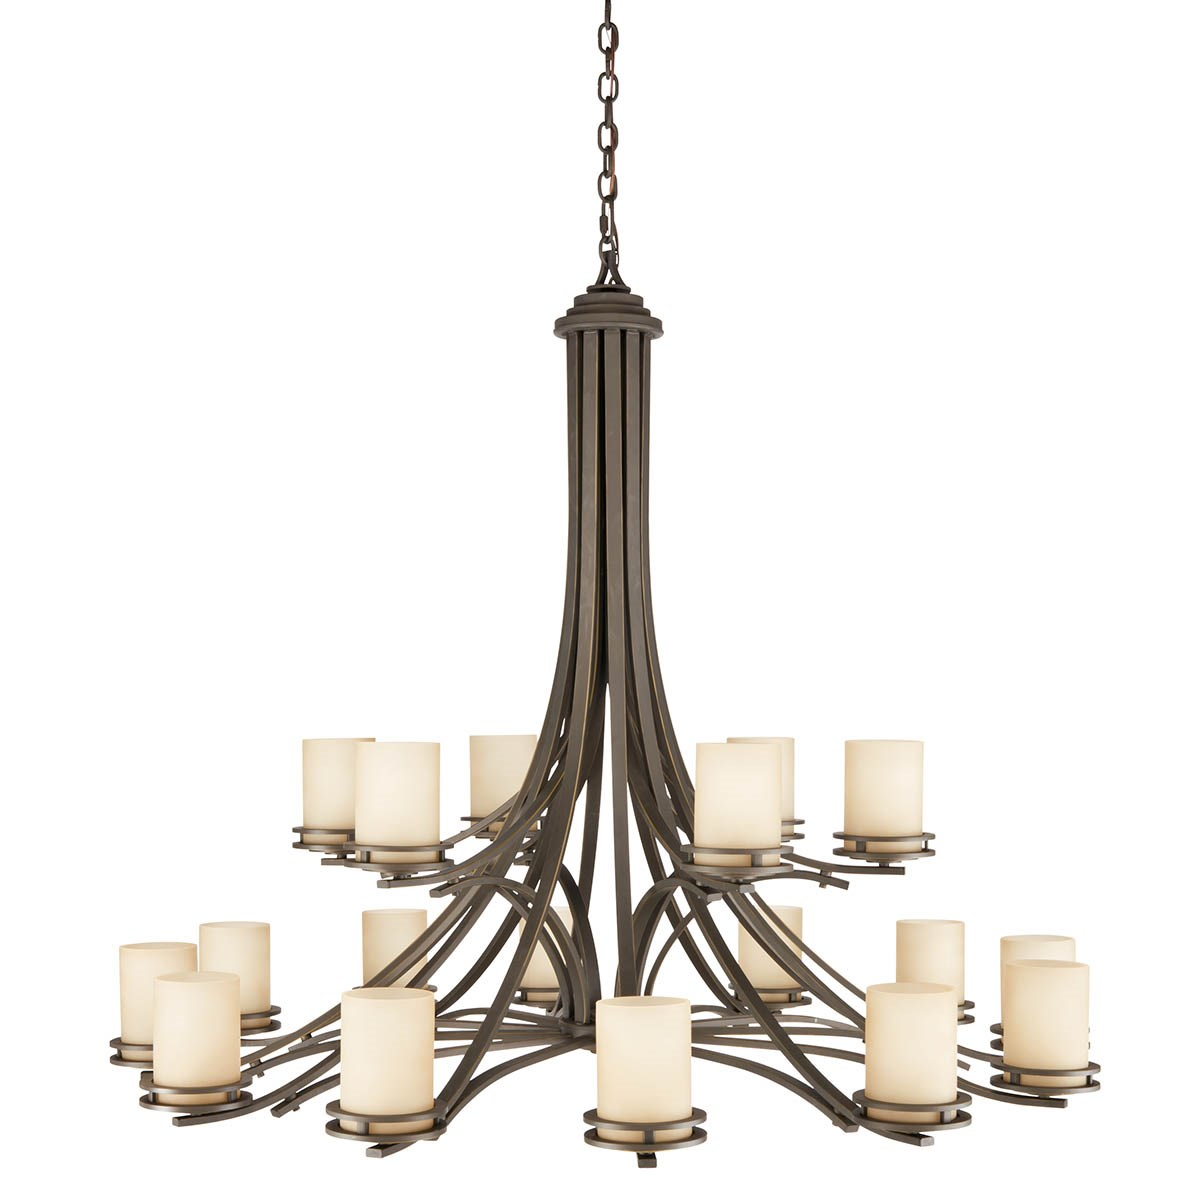 Hendrik 18 Light 2 Tier Chandelier in Olde Bronze®